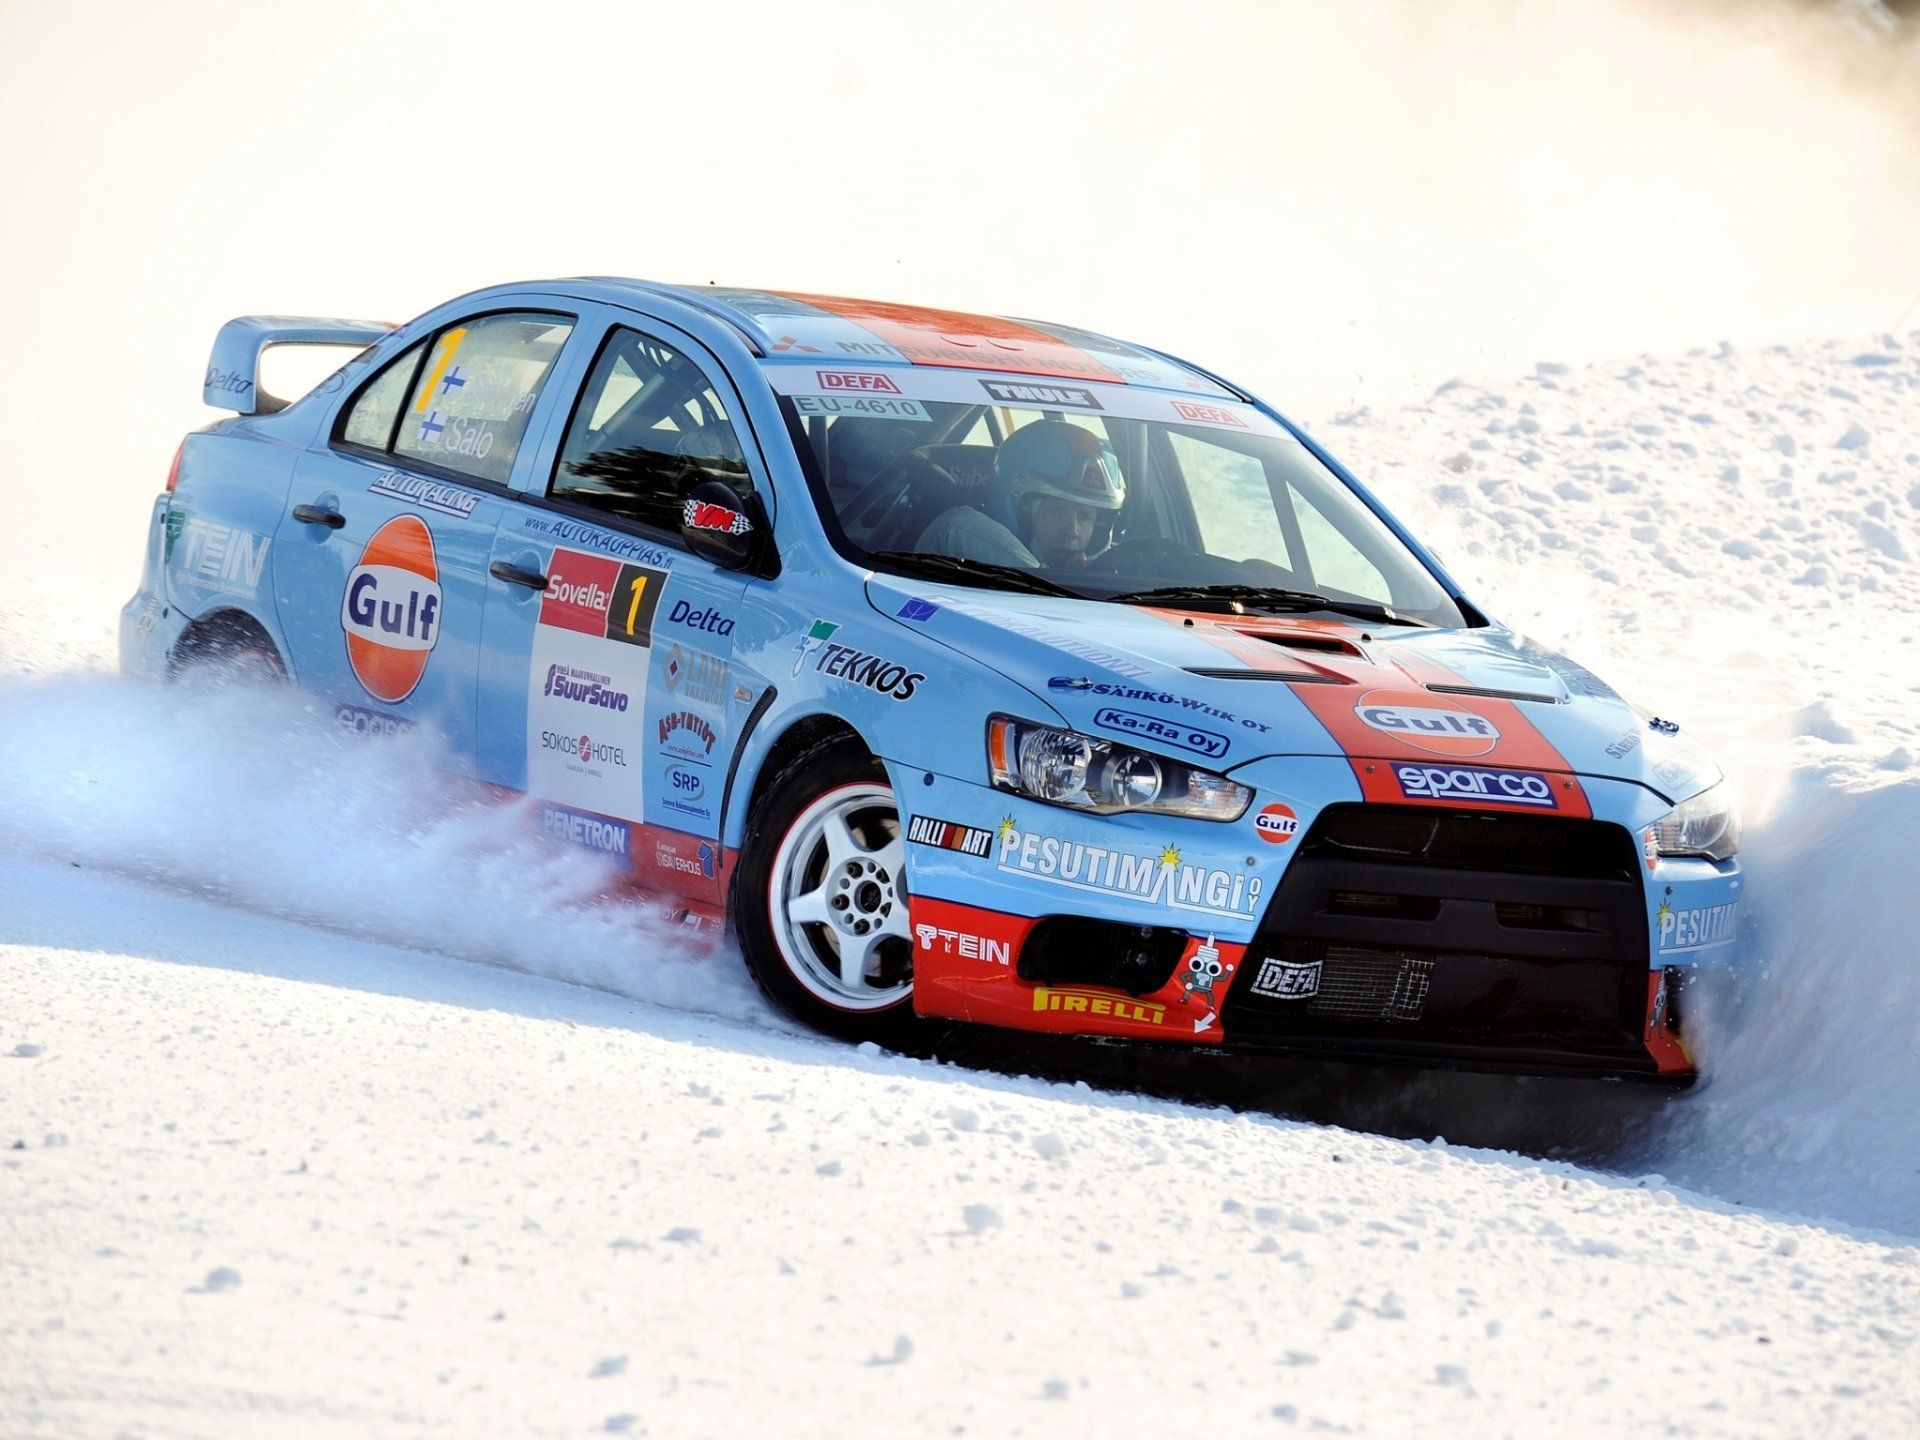 Winter Rally Car Wallpapers Top Free Winter Rally Car Backgrounds